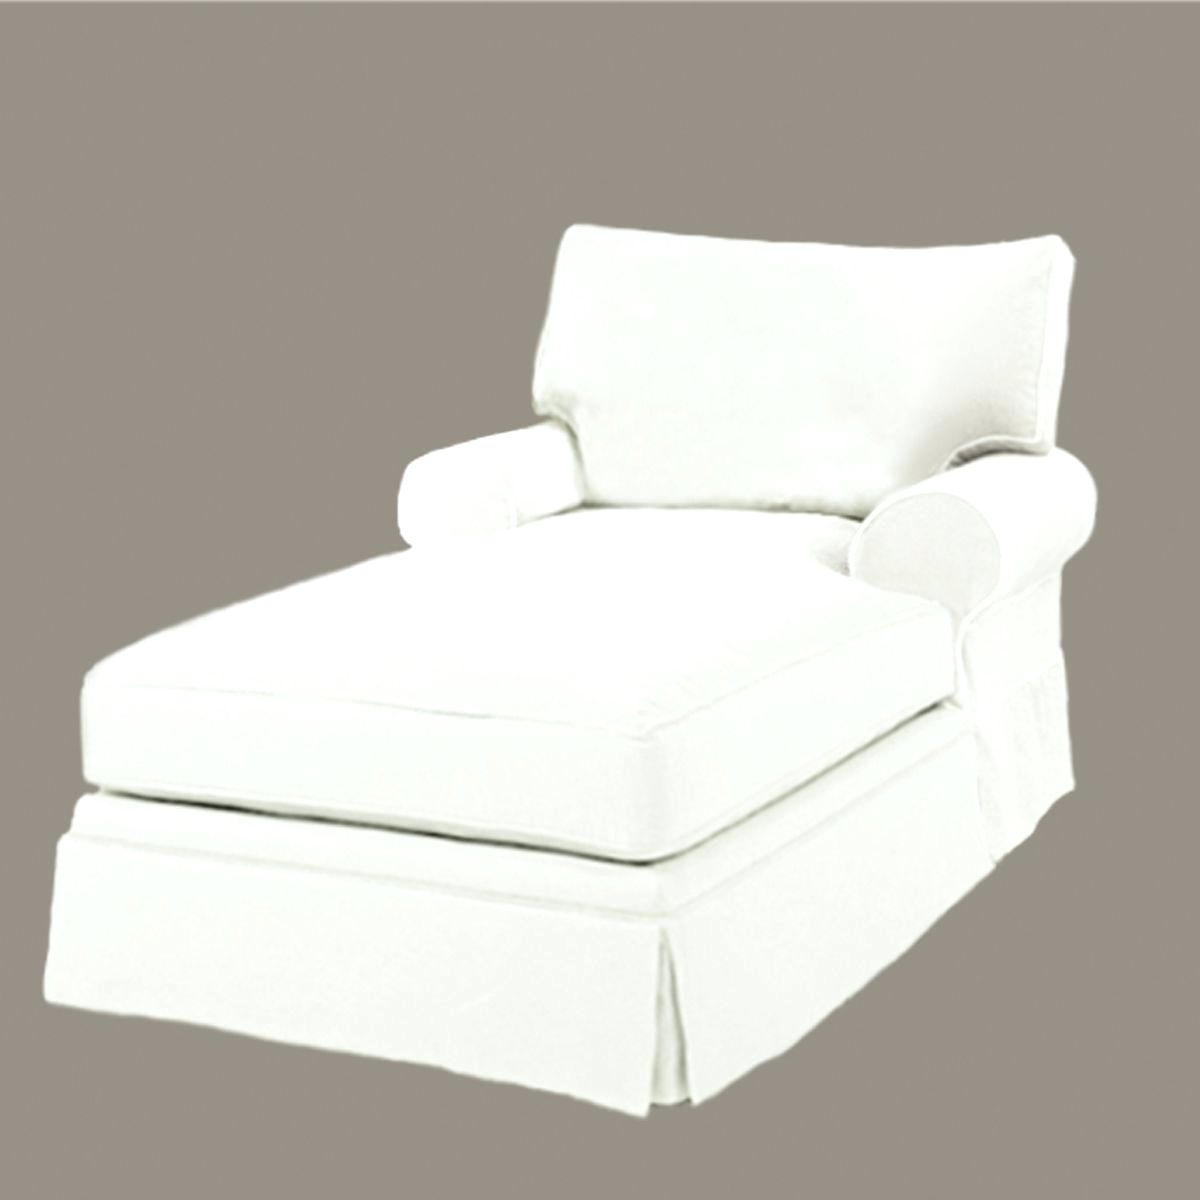 Chaise Lounge Chairs With Arms Slipcover Throughout Trendy Cover For Indoor Chaise Lounge Chair • Lounge Chairs Ideas (View 6 of 15)